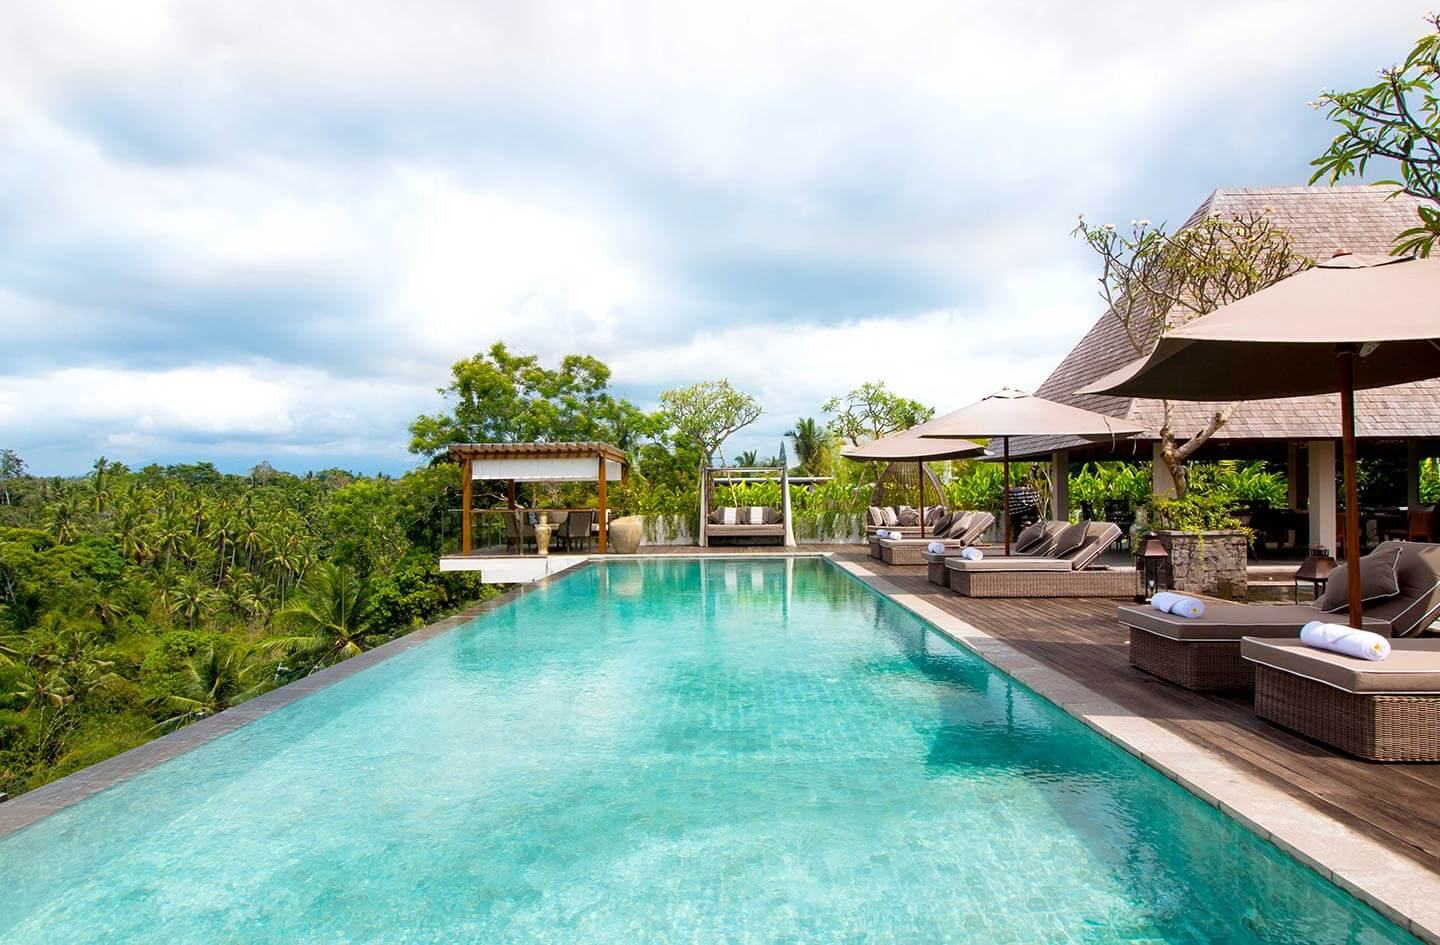 Goya boutique resort the bali bible for Boutique accommodation bali